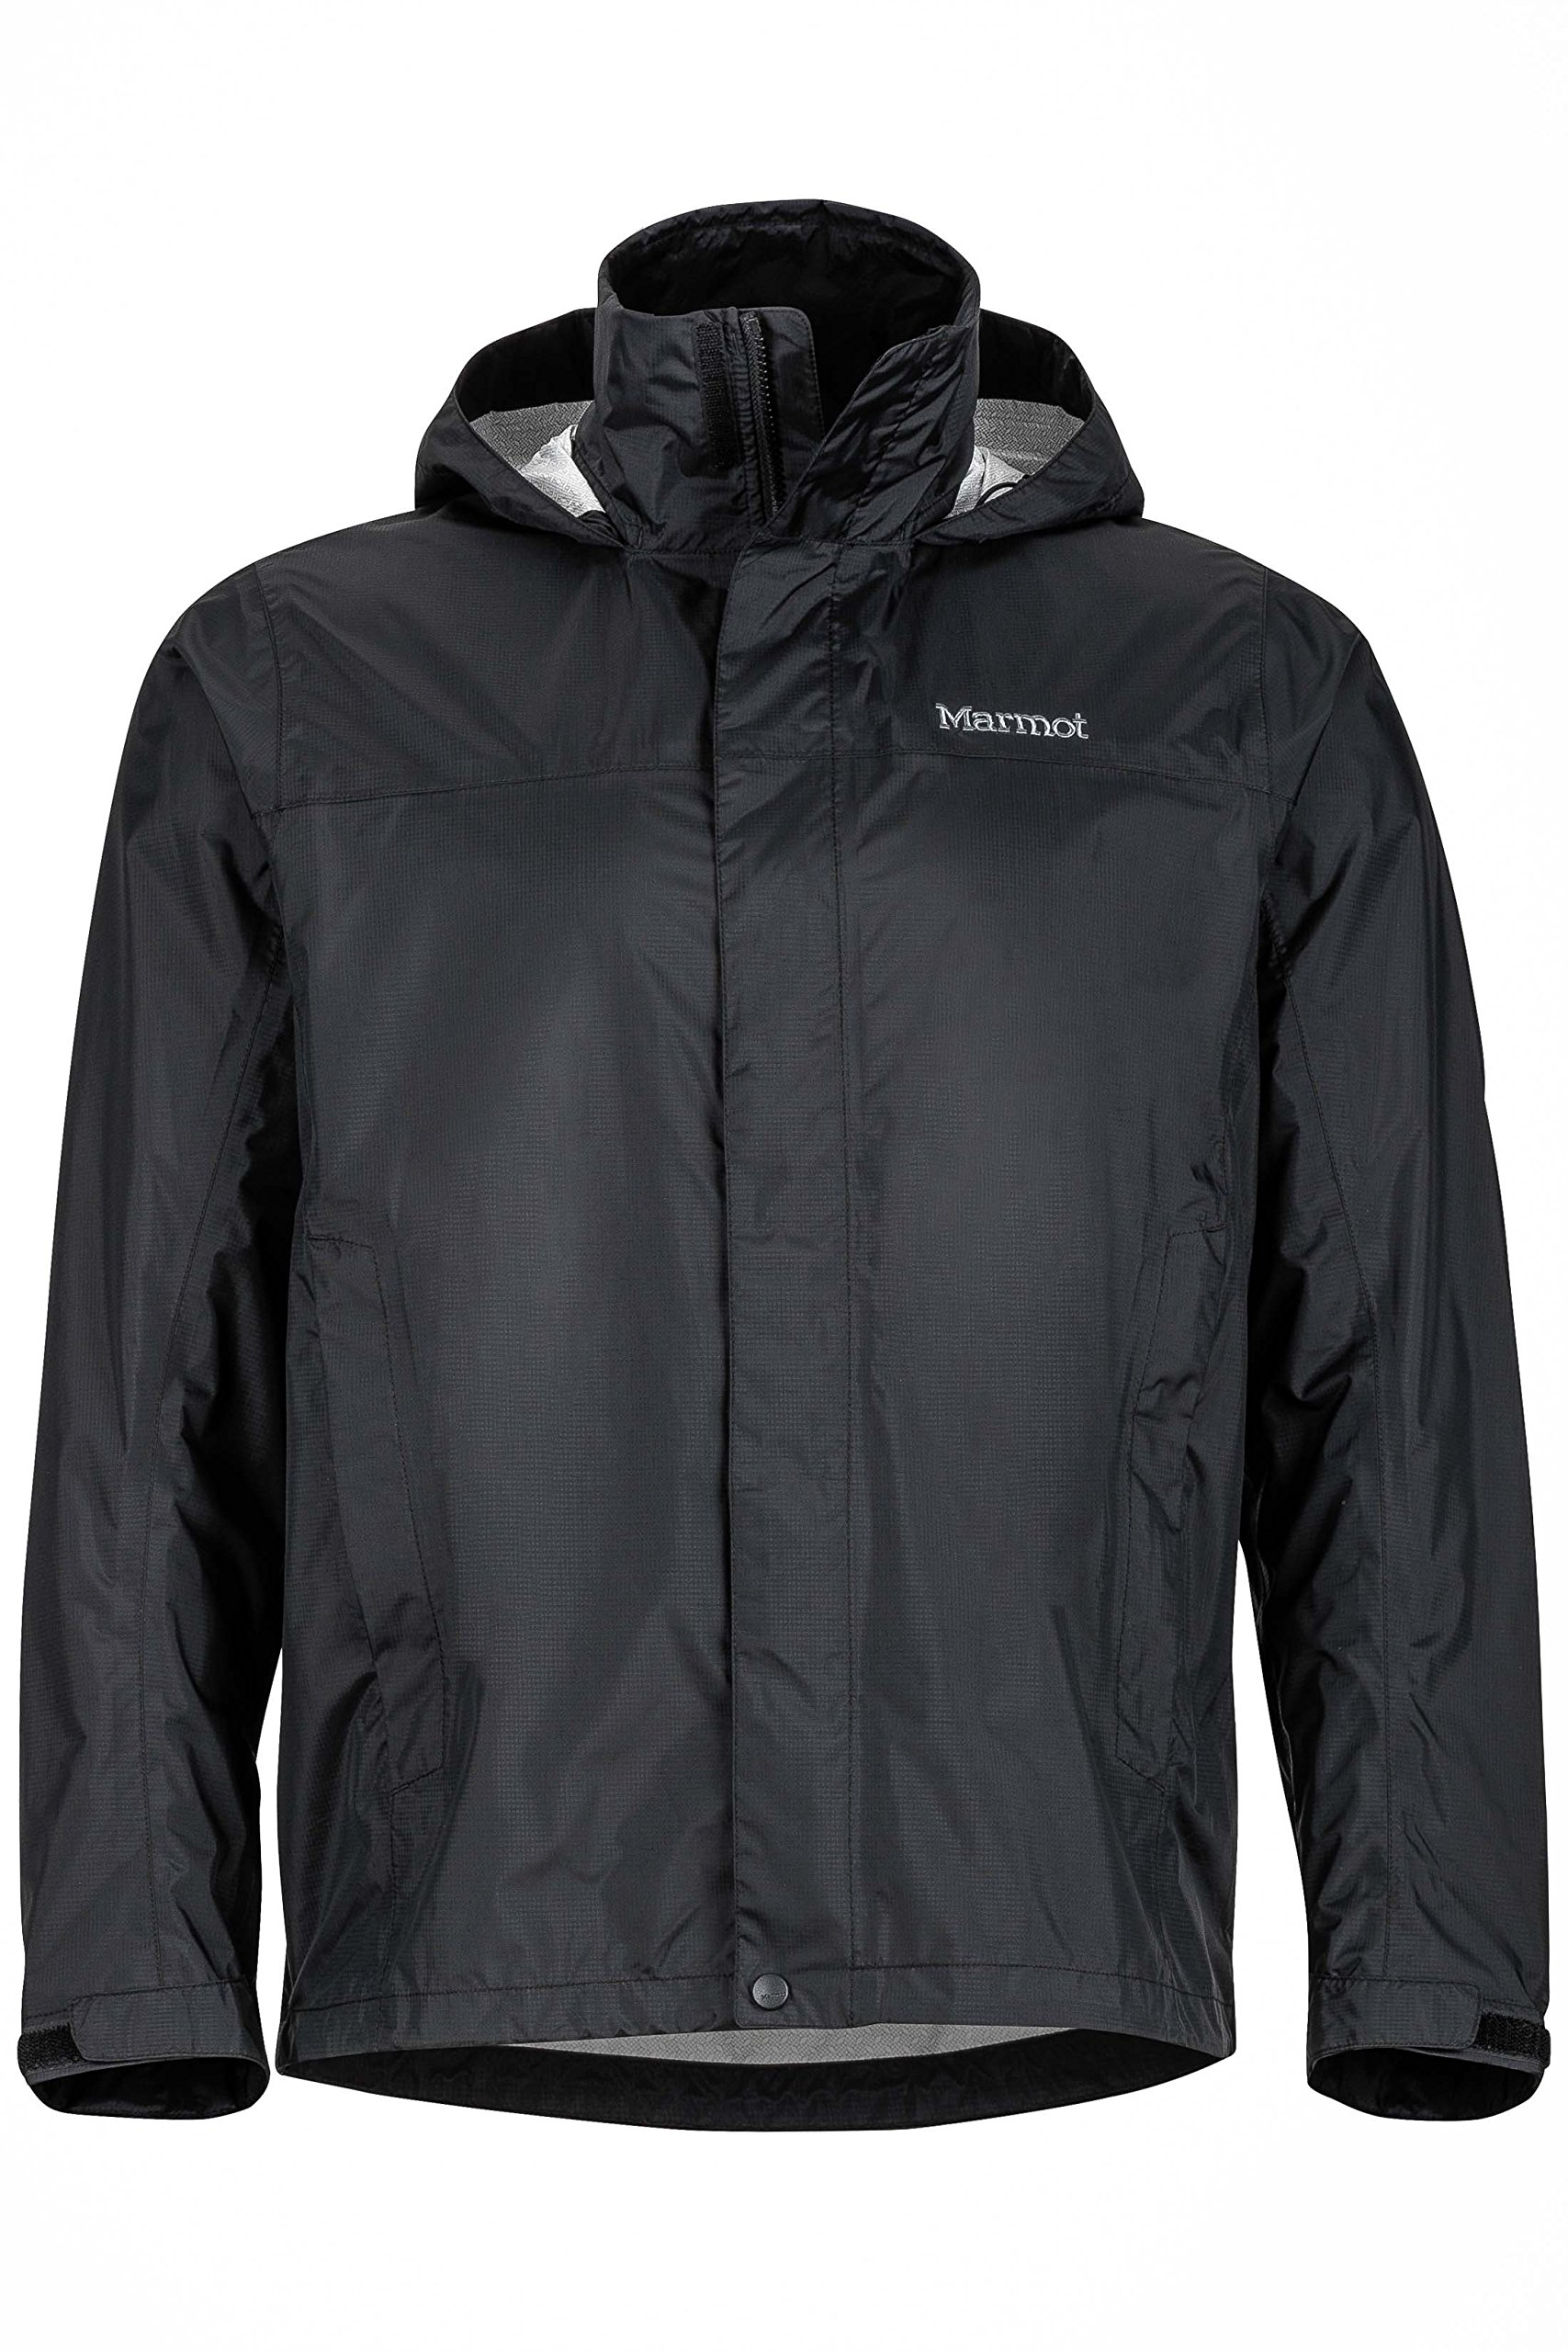 Marmot Men's PreCip  Jacket Black LG by Marmot